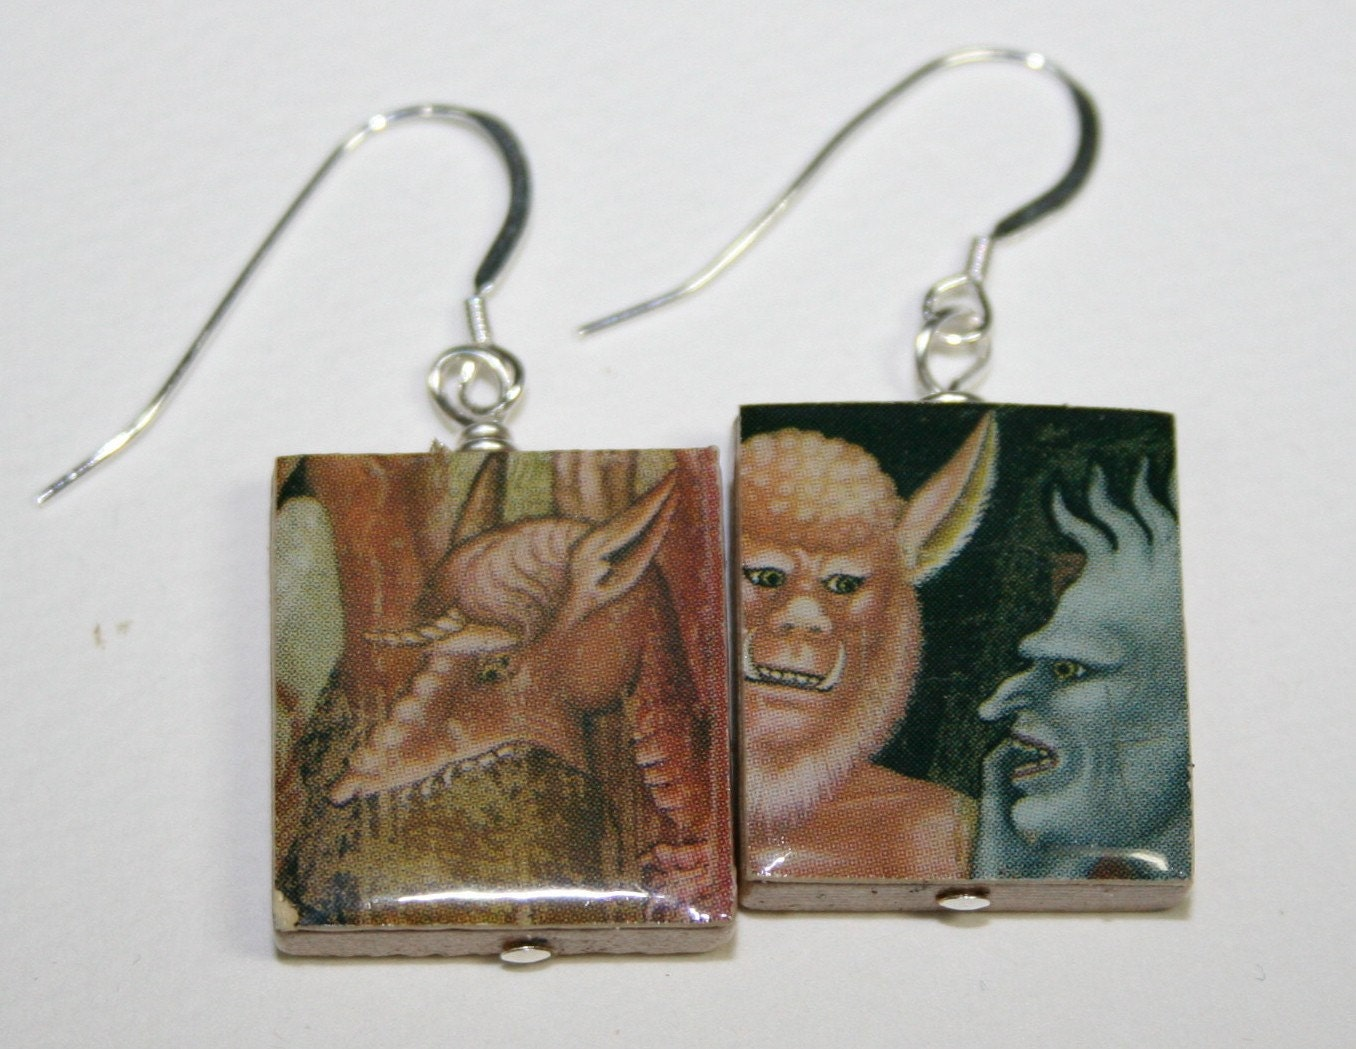 Scrabble Tile Earrings Scary Medieval Monsters